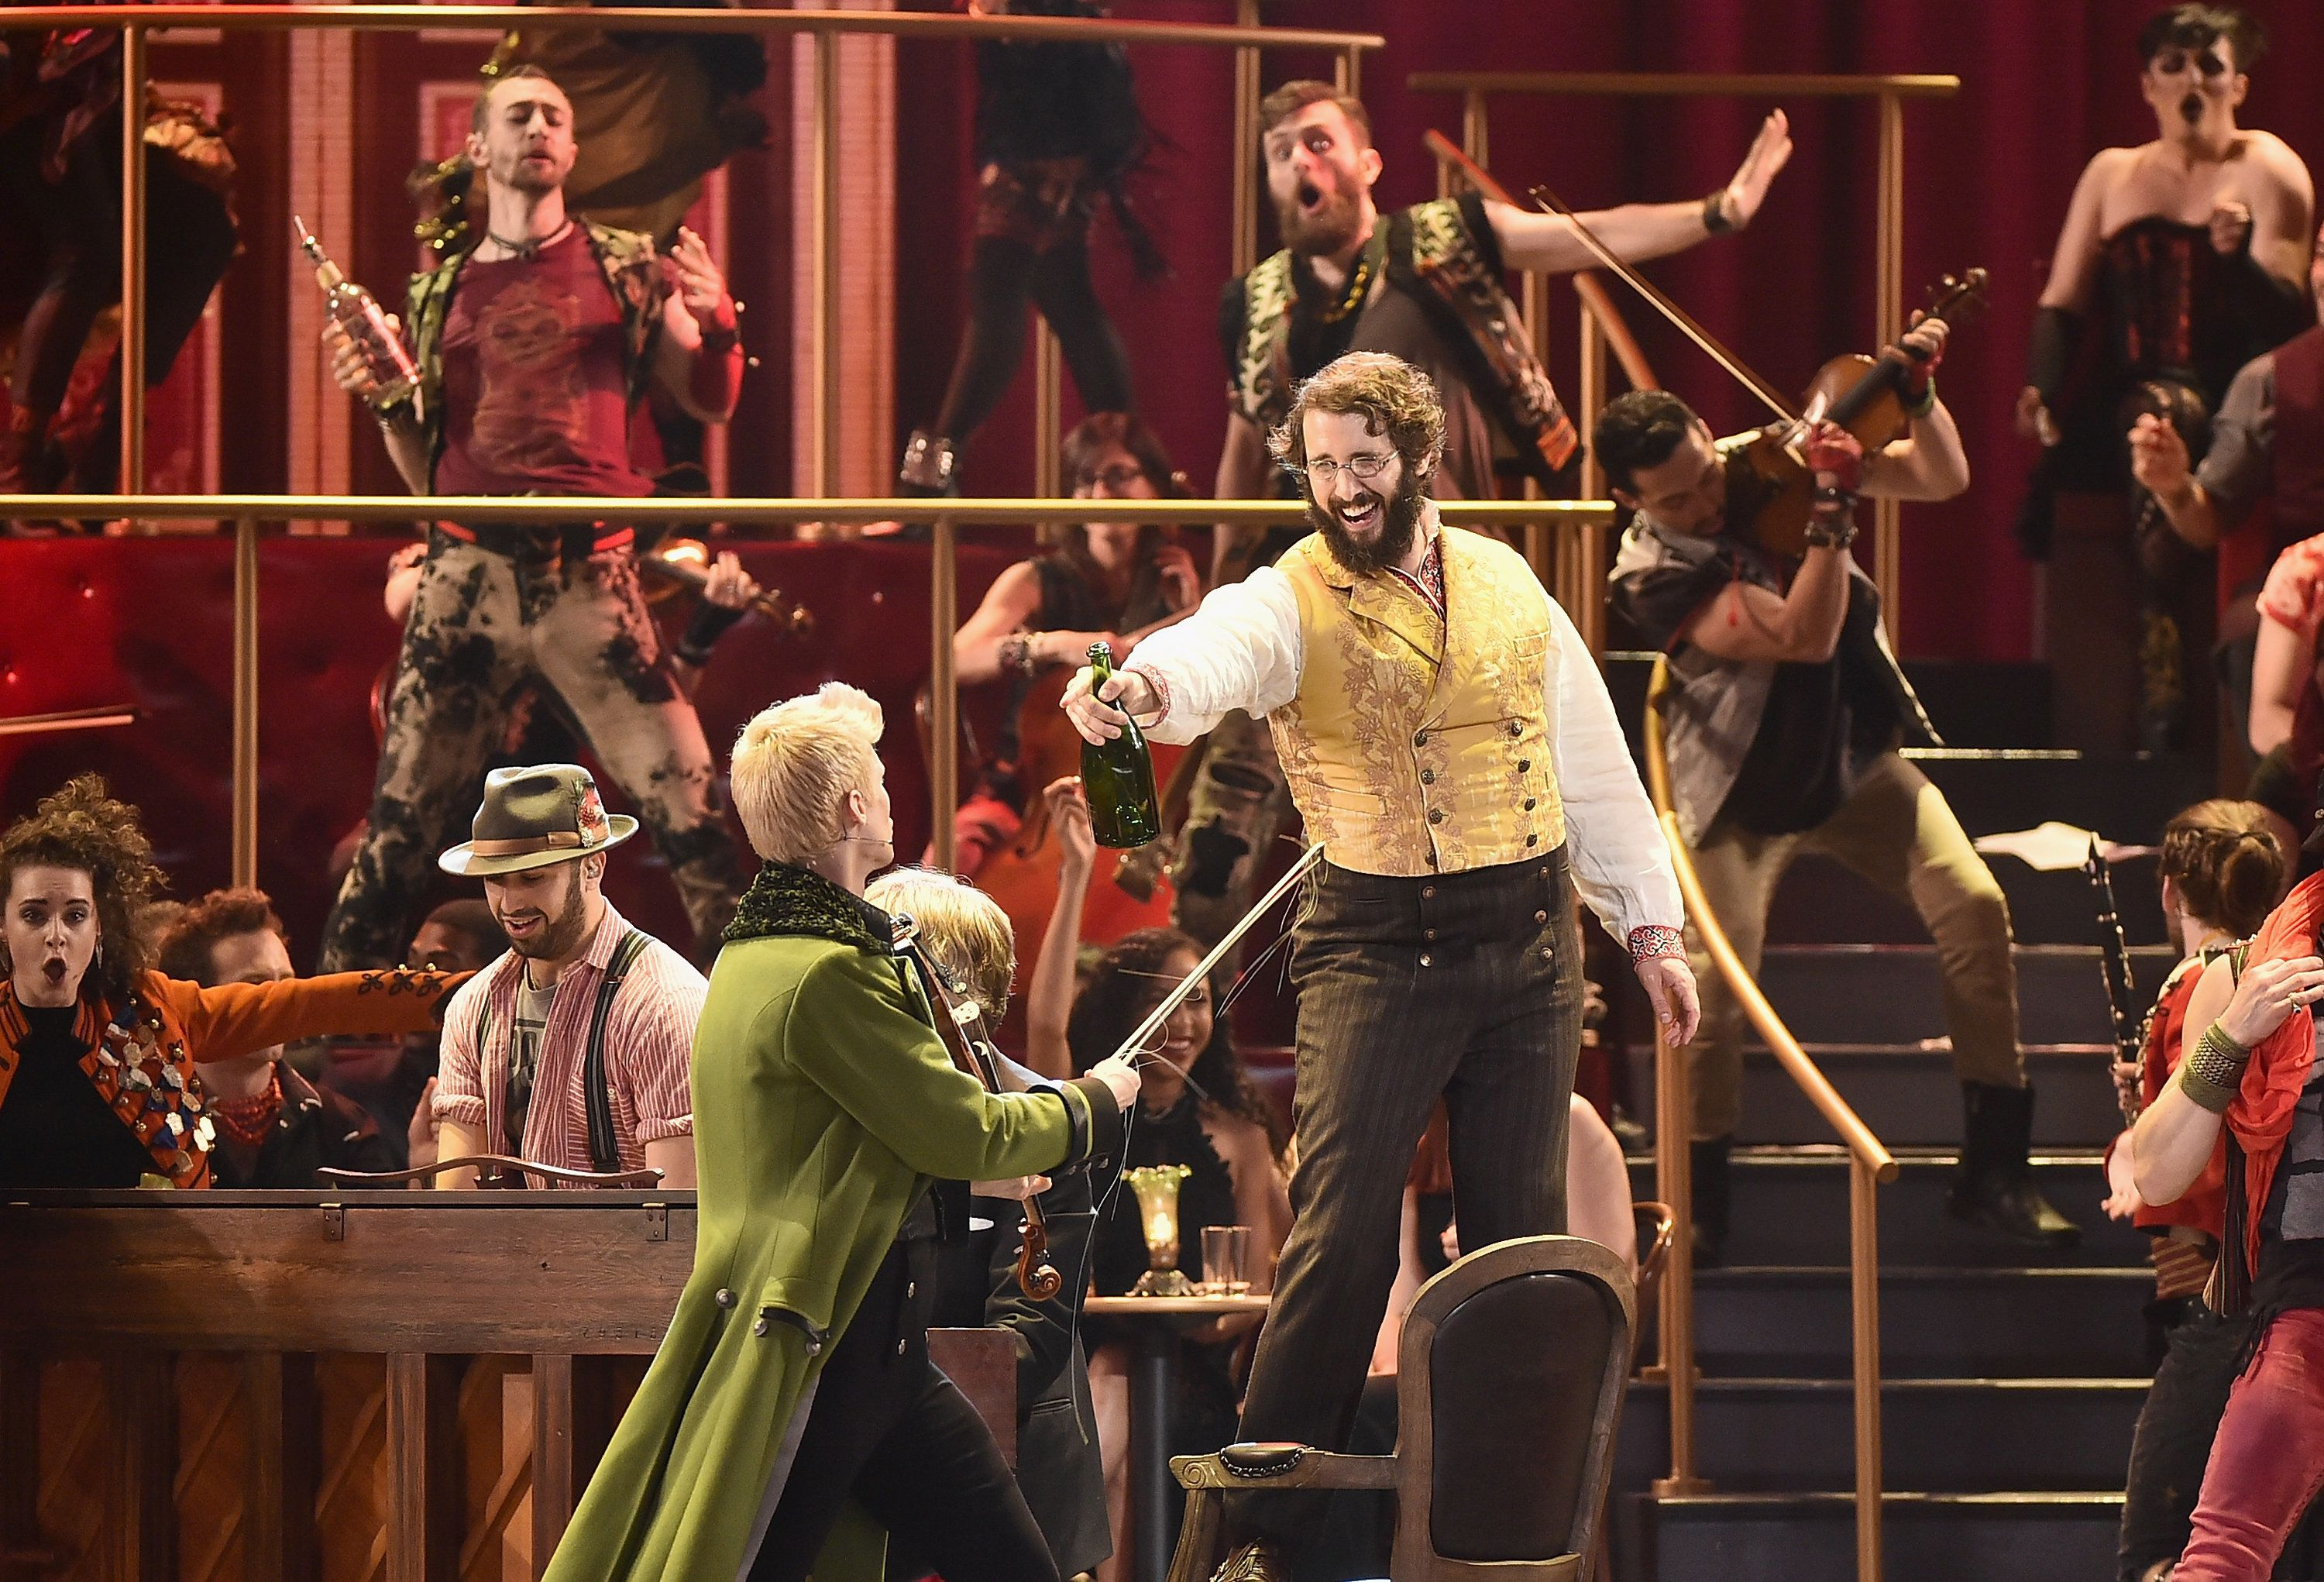 NEW YORK, NY - JUNE 11:  Lucas Steele and Josh Groban perform onstage with the cast of 'Natasha, Pierre and The Great Comet of 1812' onstage during the 2017 Tony Awards at Radio City Music Hall on June 11, 2017 in New York City.  (Photo by Theo Wargo/Getty Images for Tony Awards Productions)